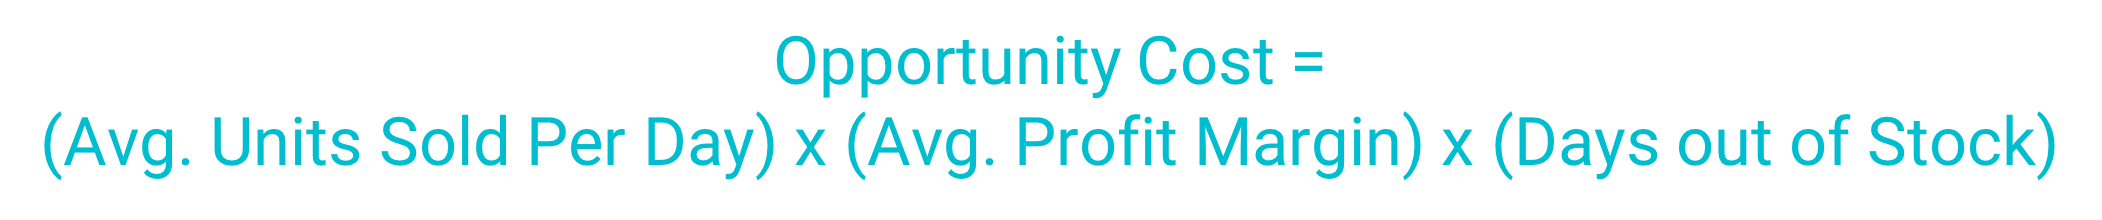 formula for calculating opportunity cost by sku